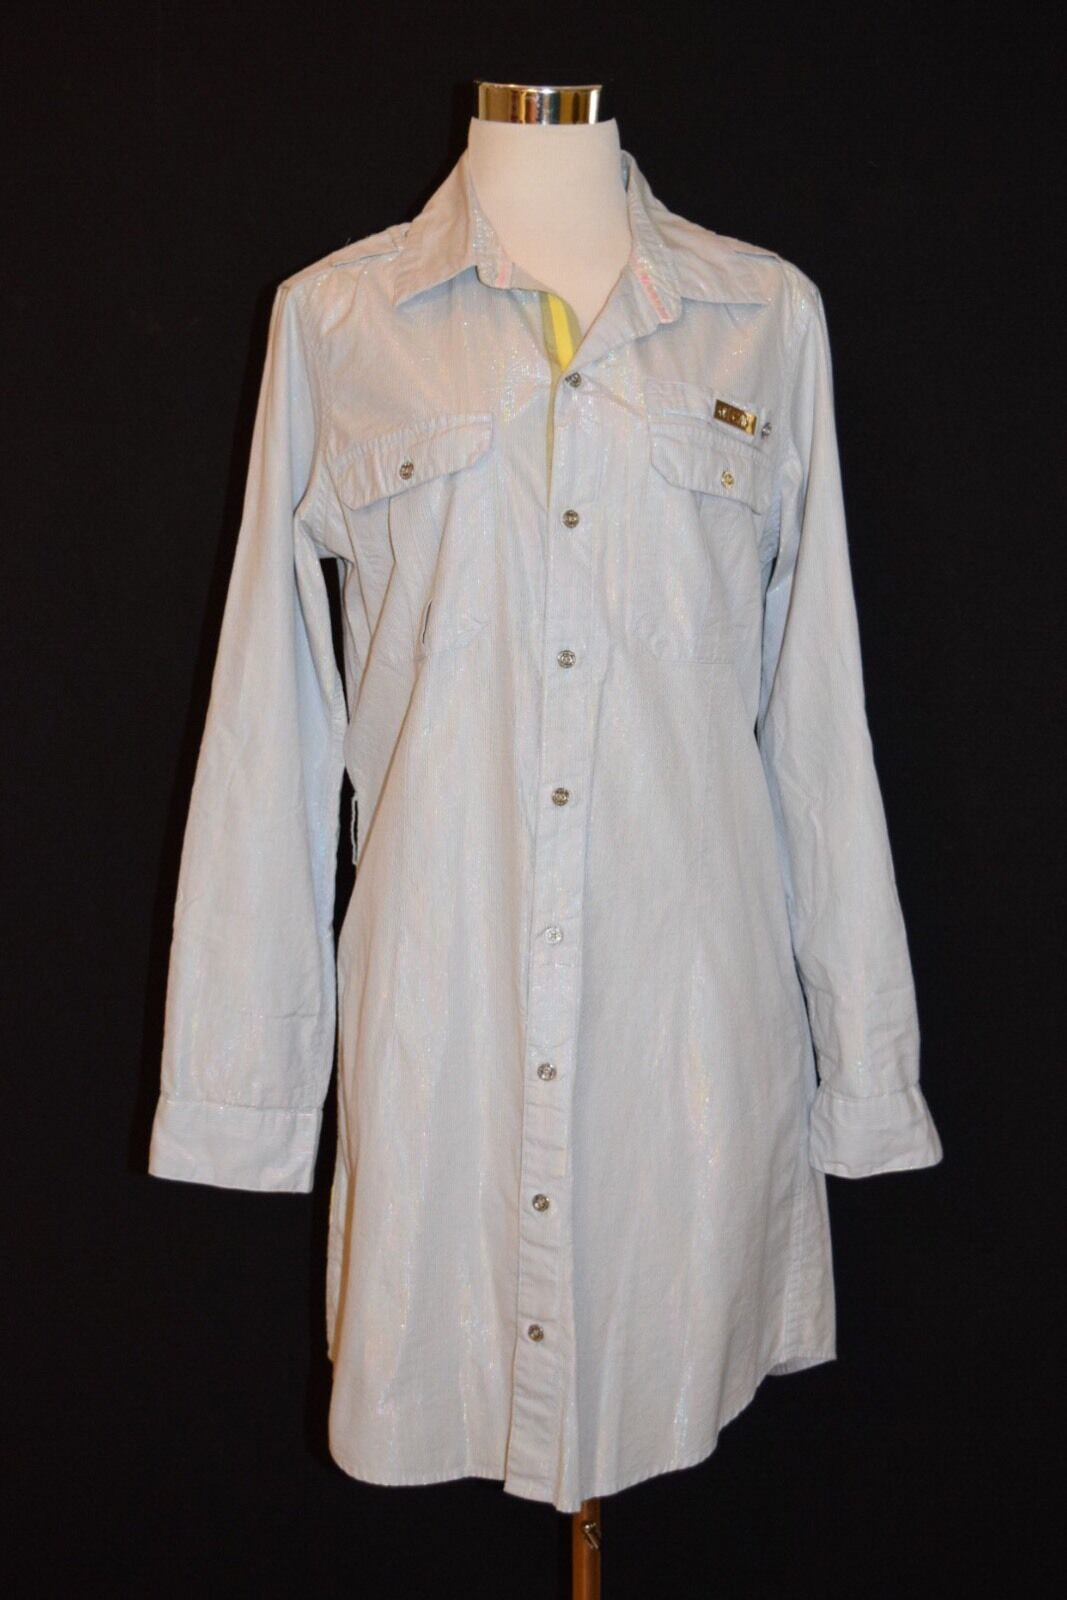 CAVI Women's Light bluee W multicolor Pinstripe Button Down Shirt Dress L 5743